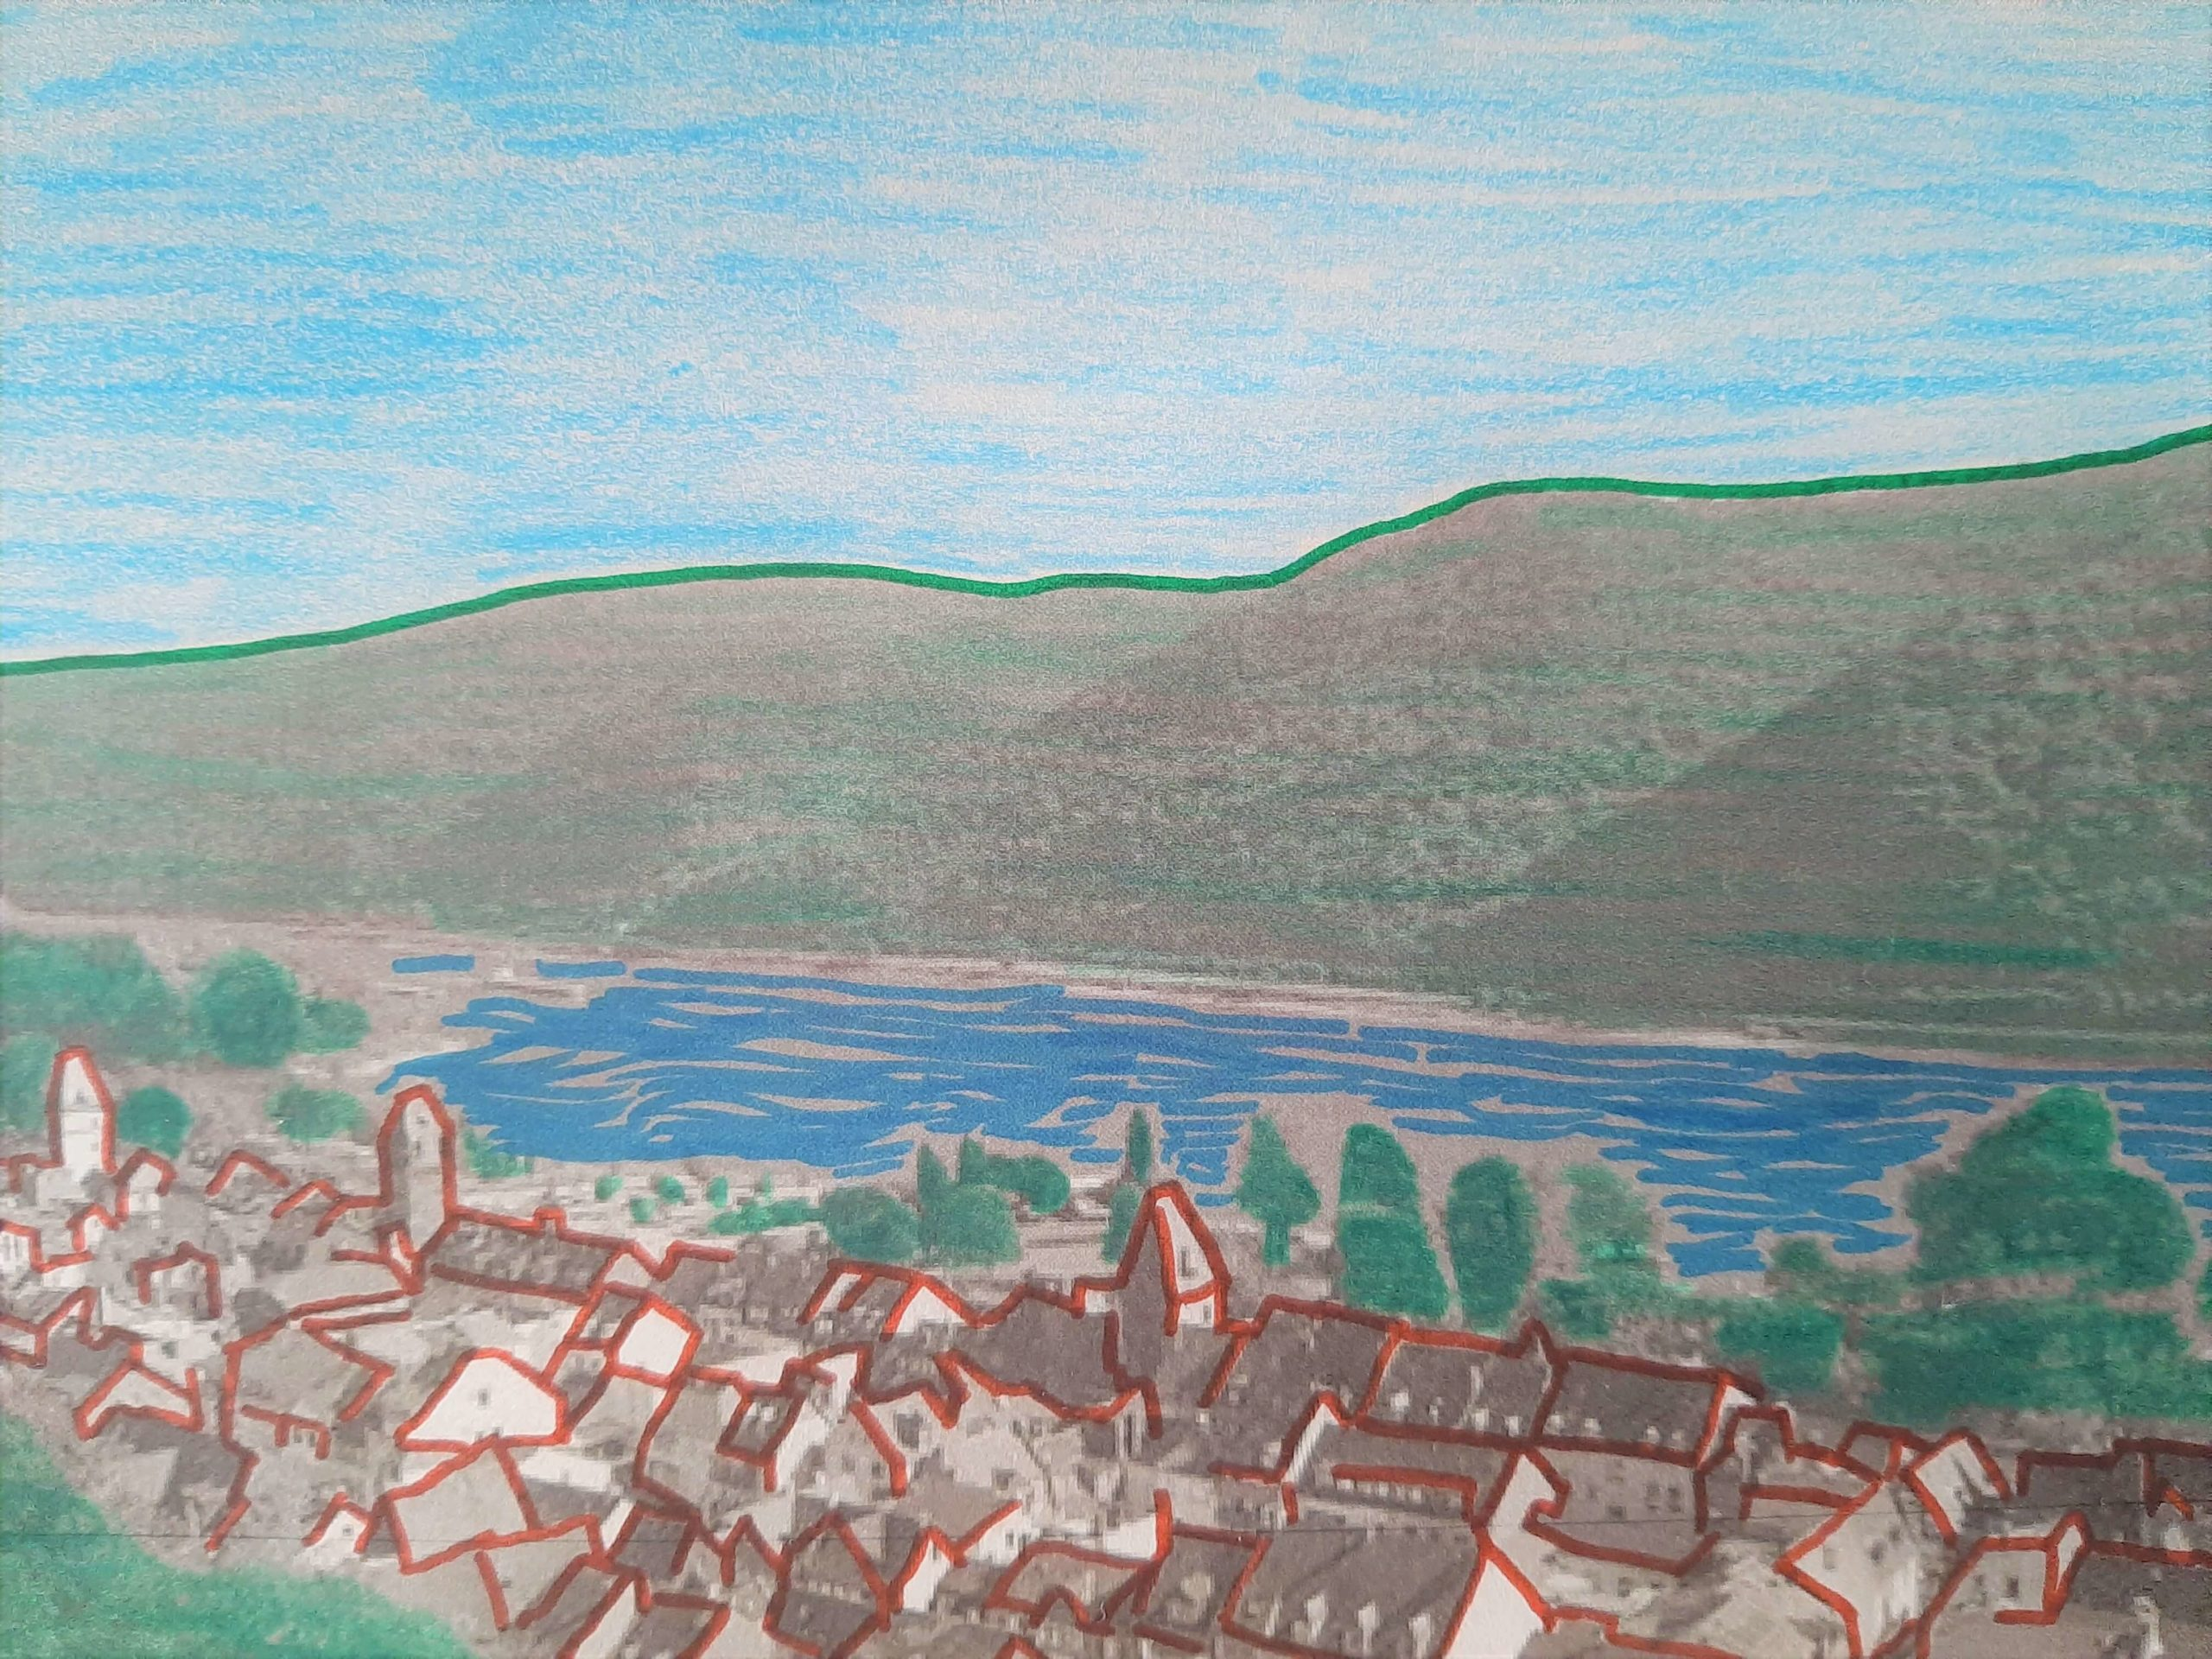 My own postcard of the Upper Middle Rhine Valley